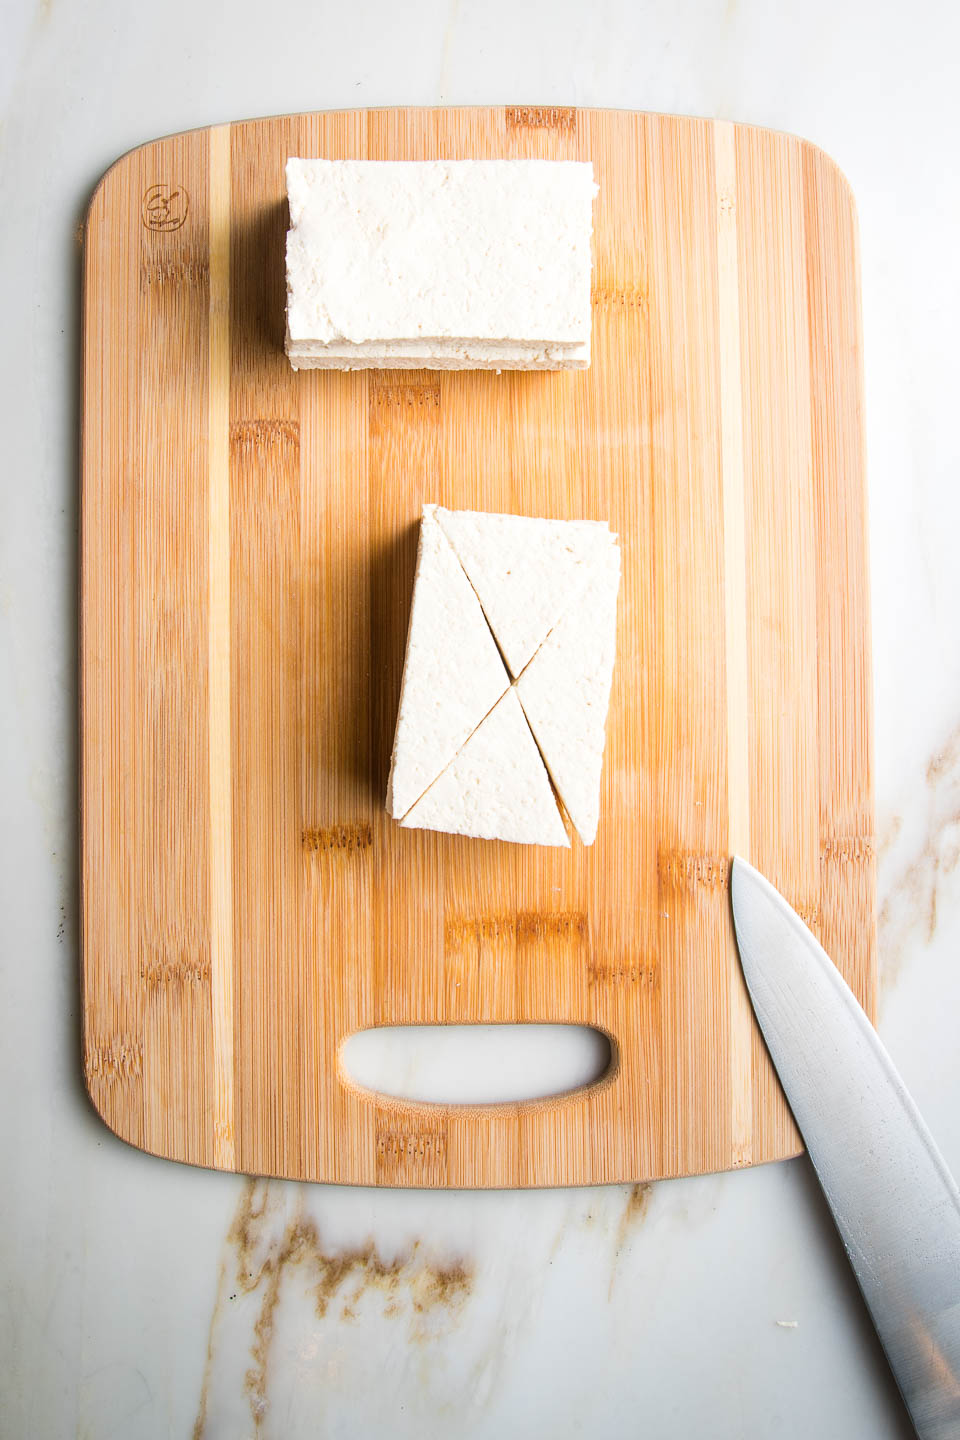 Cutting board with block of tofu being cut into triangles